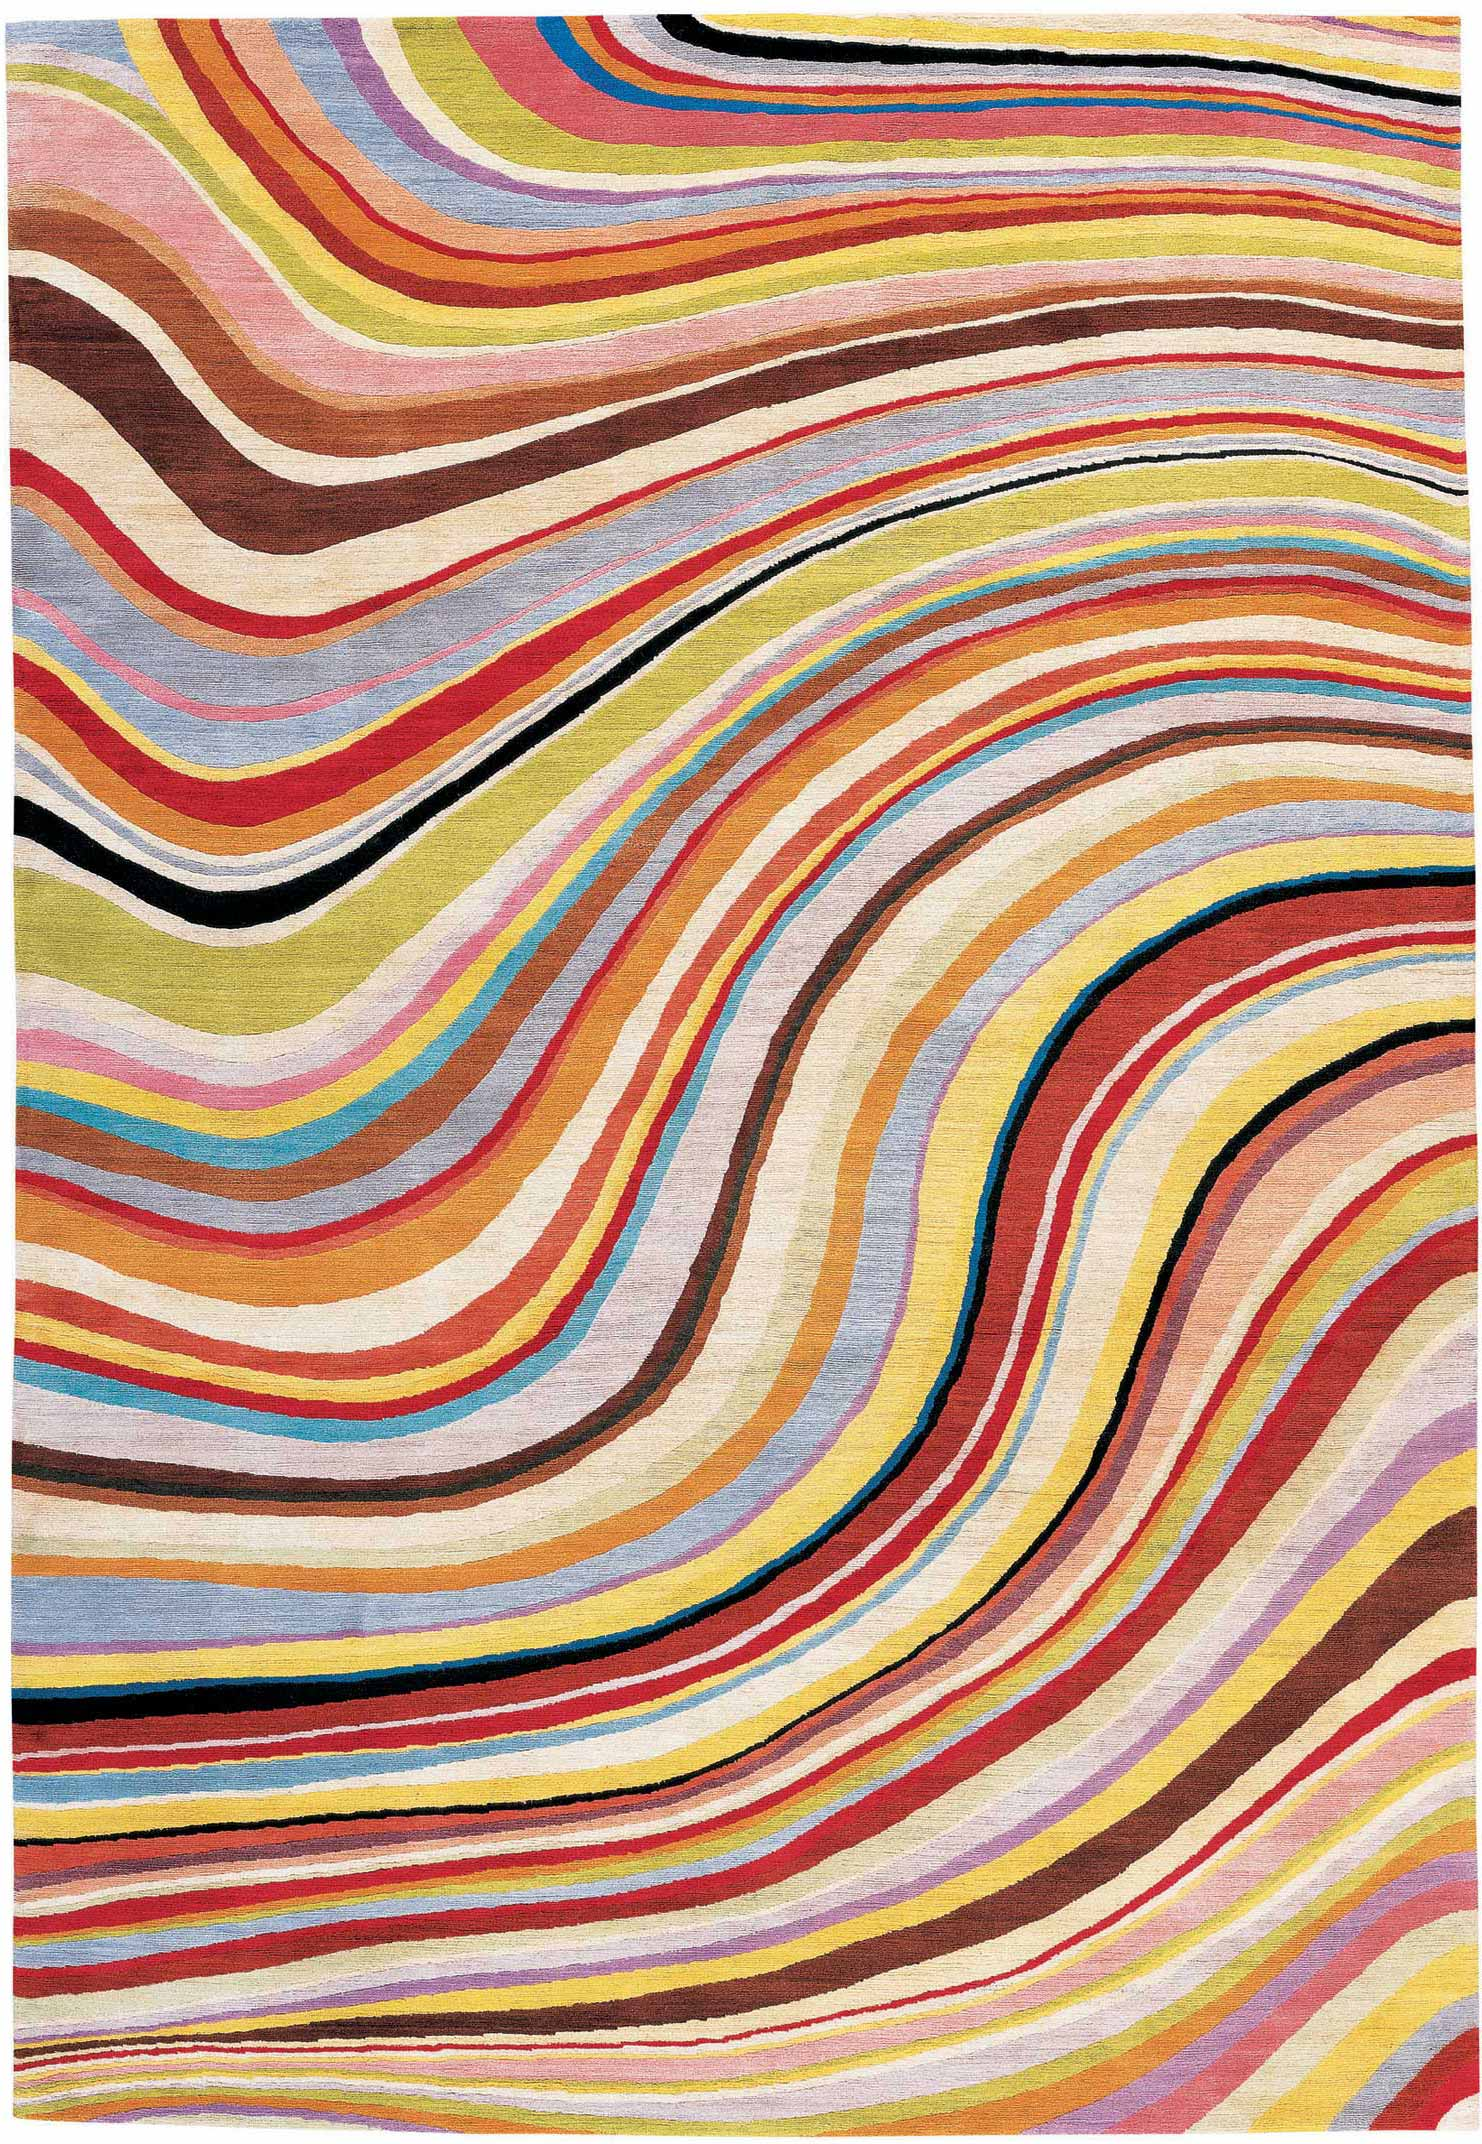 'Swirl' by Paul Smith for The Rug Company | Image used under Fair Use Doctrine